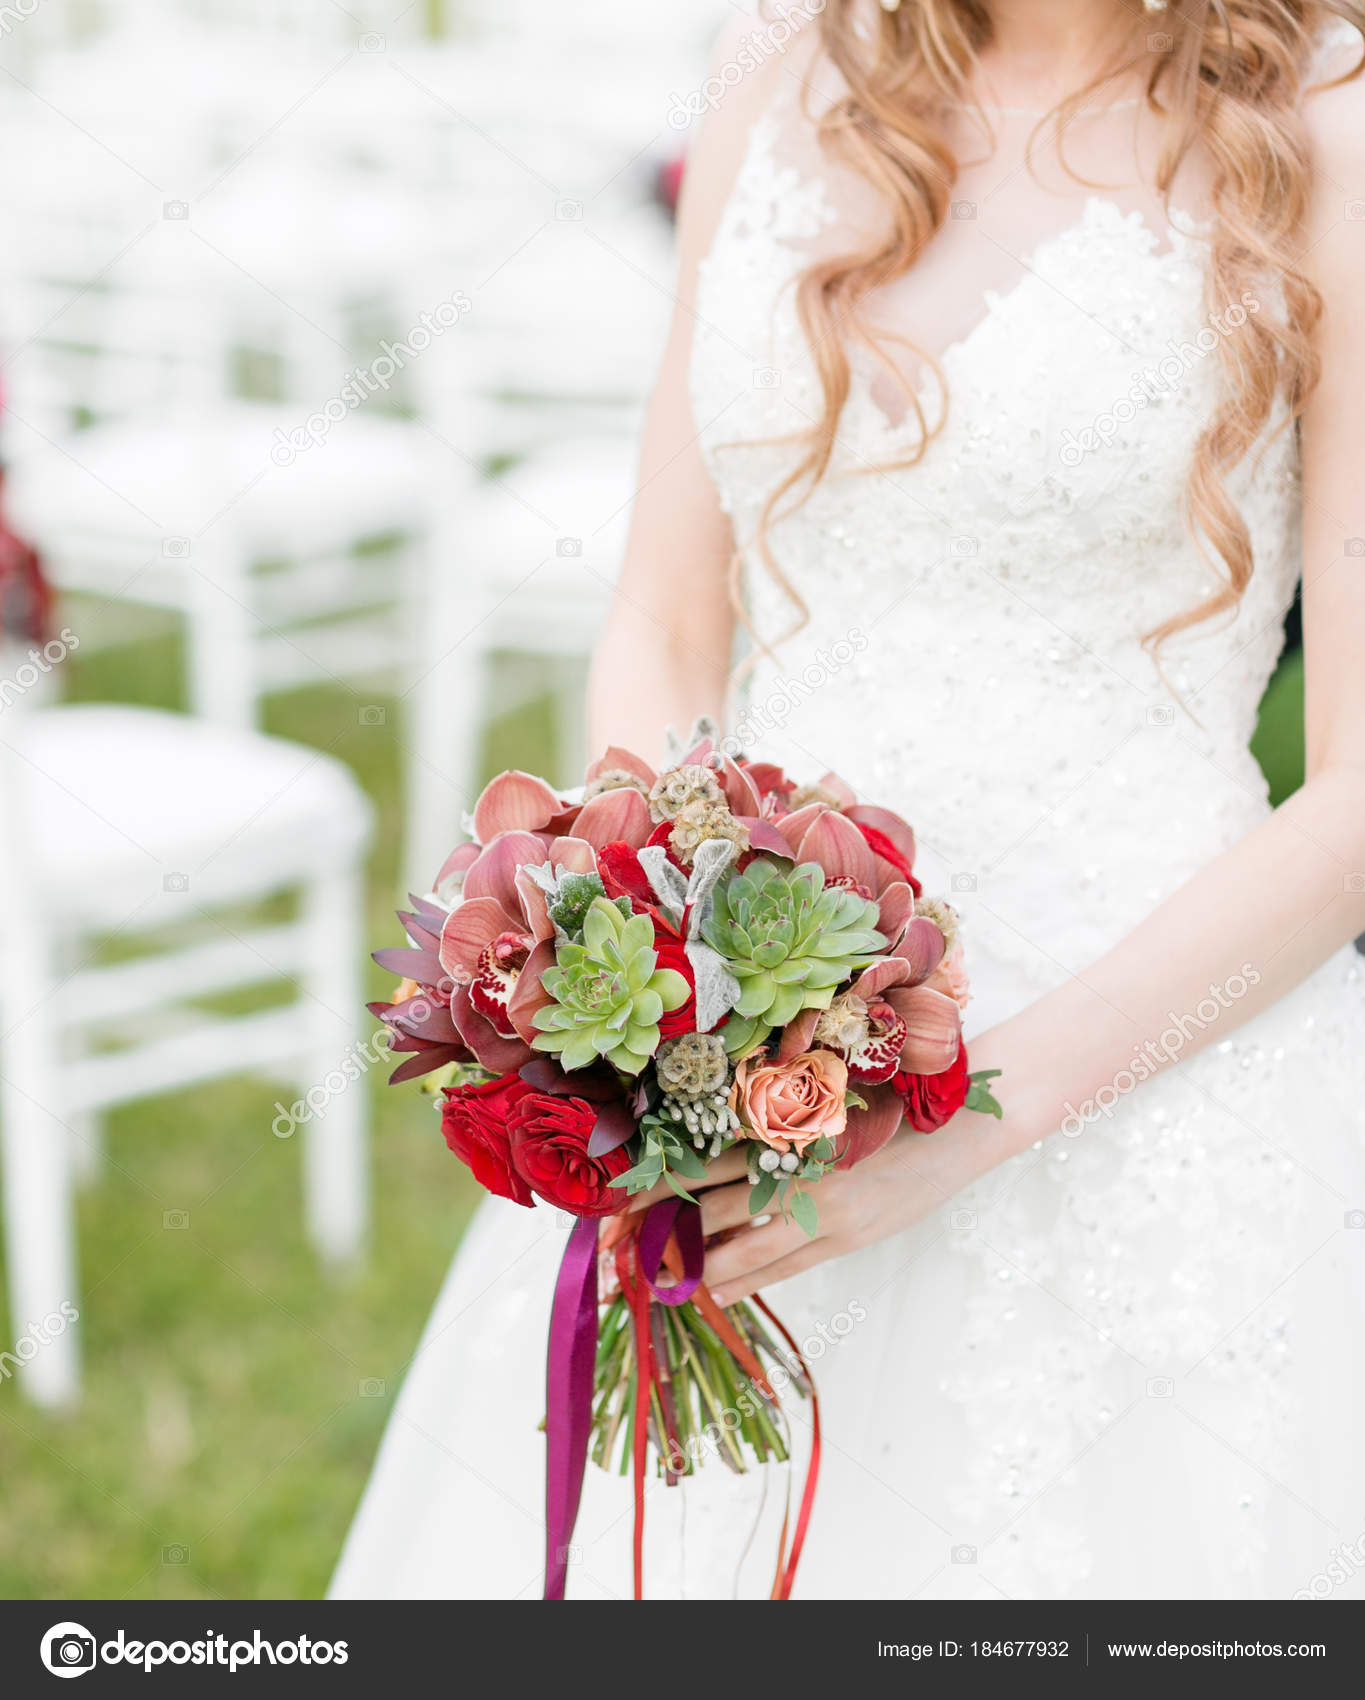 Stunning Red Bridal Bouquet On White Chair Wedding Ceremony Mix Of